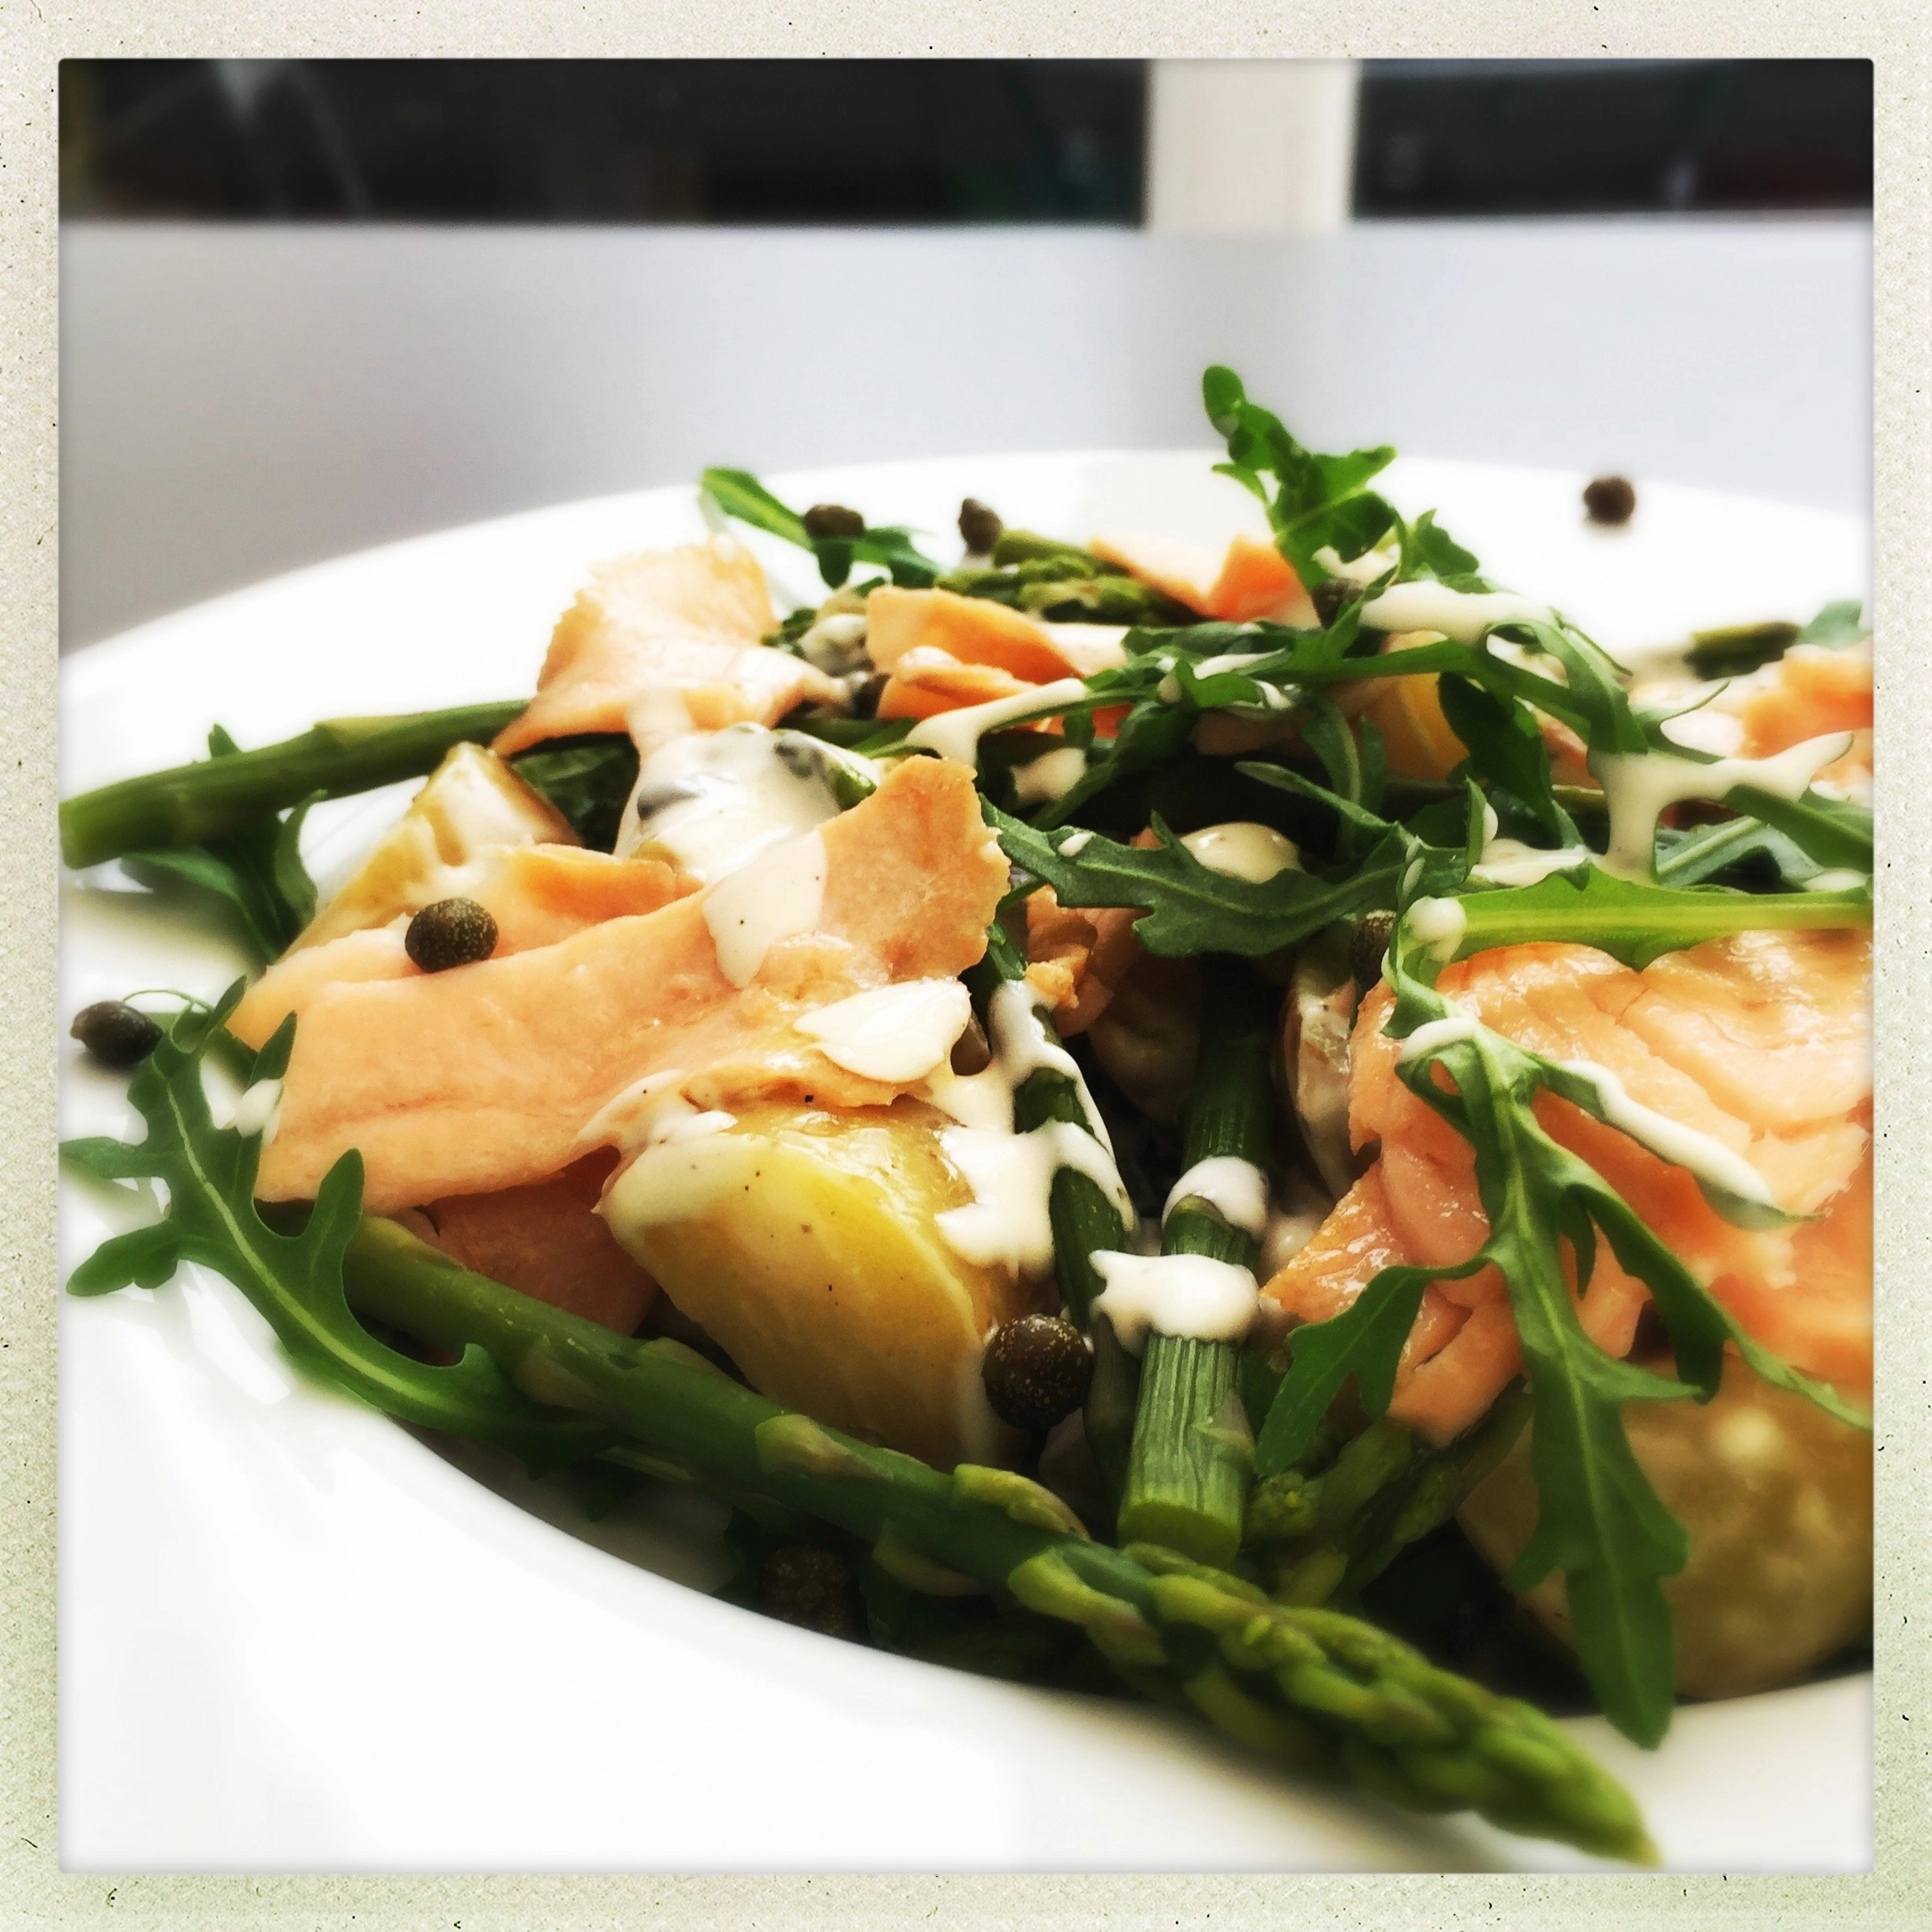 Potato salad with asparagus and smoked salmon